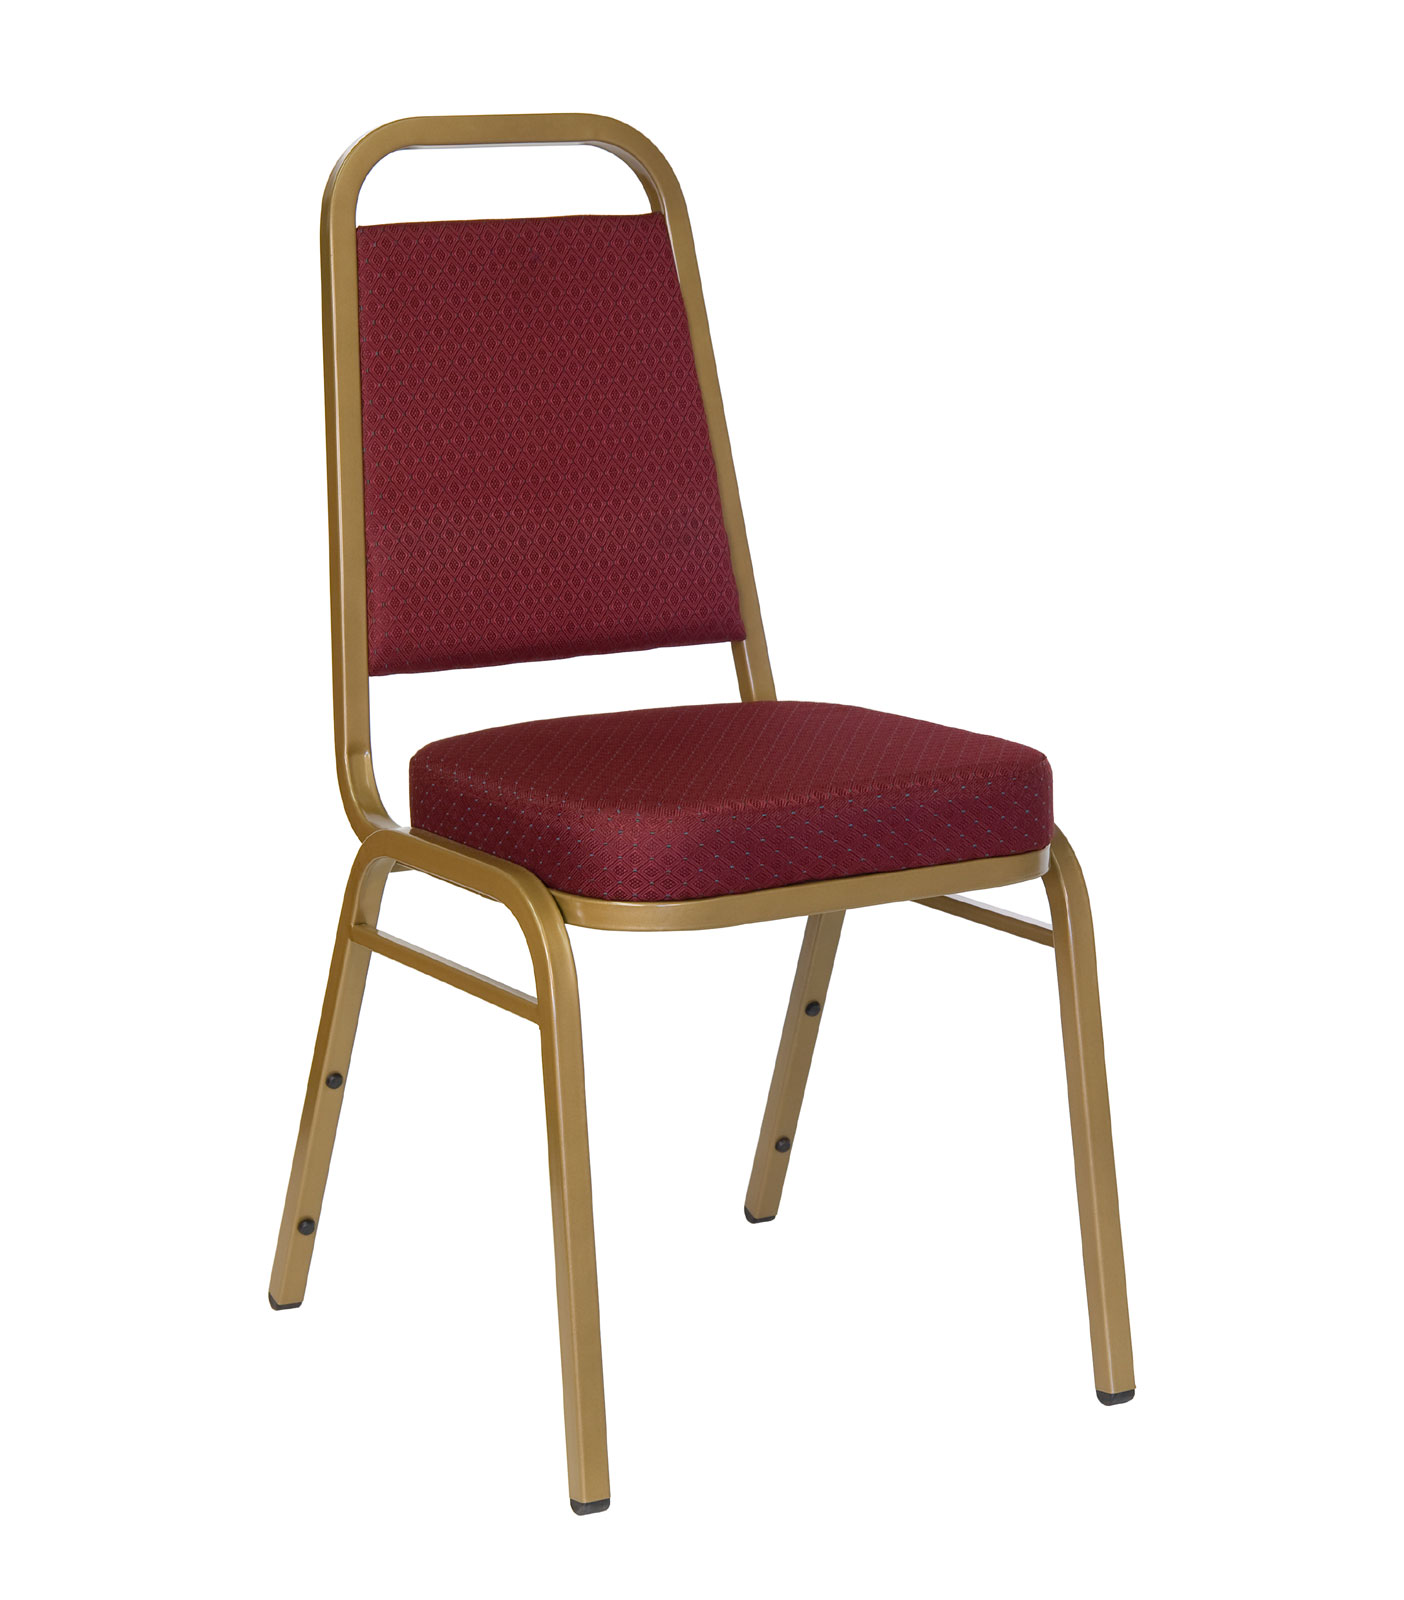 Hercules Stacking Chairs Hercules Series Trapezoidal Back Stacking Banquet Chair By